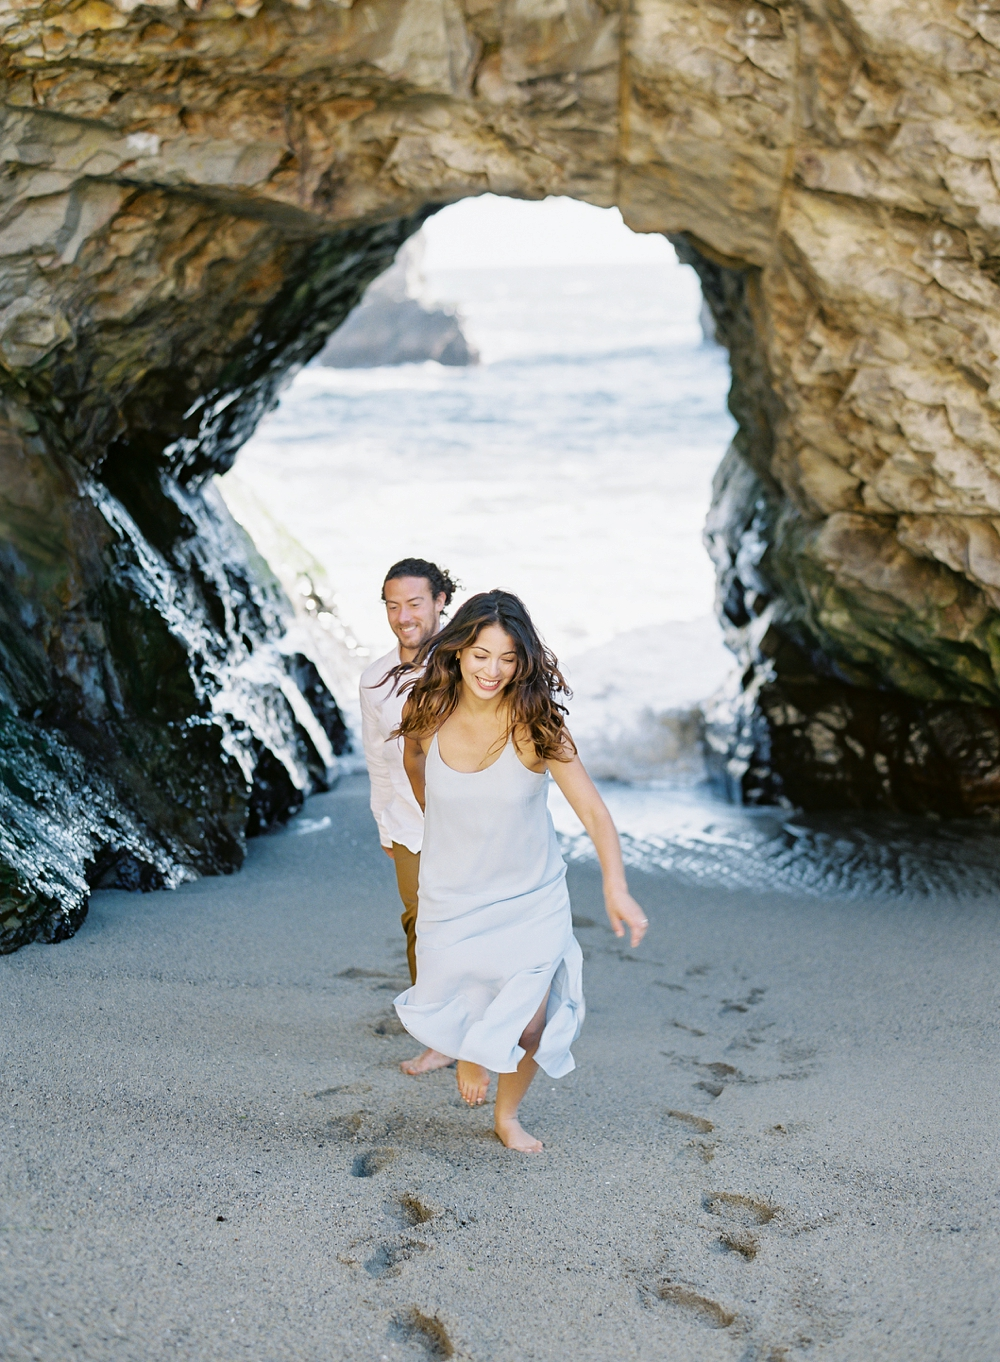 Vicki Grafton Photography | Fine Art Film Wedding Photographer | CA Santa Cruz Fine Art Film Wedding Photographer | San Francisco Bay Area Wedding Photographer_0052.jpg